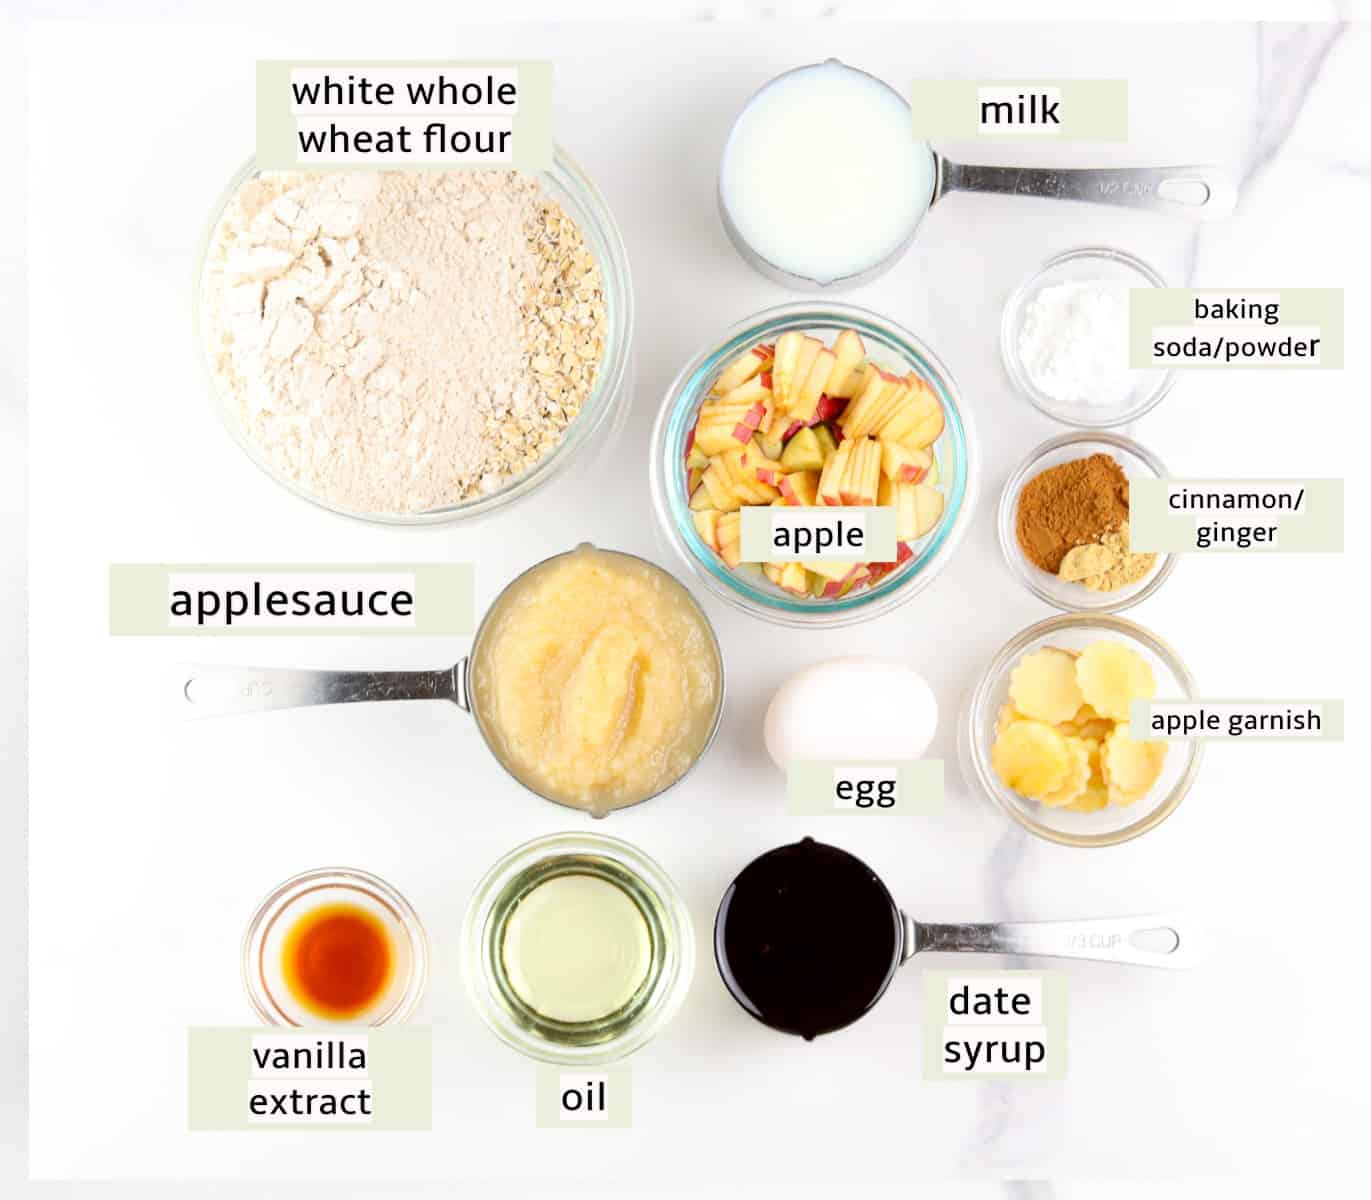 Image of ingredients to make applesauce muffins.